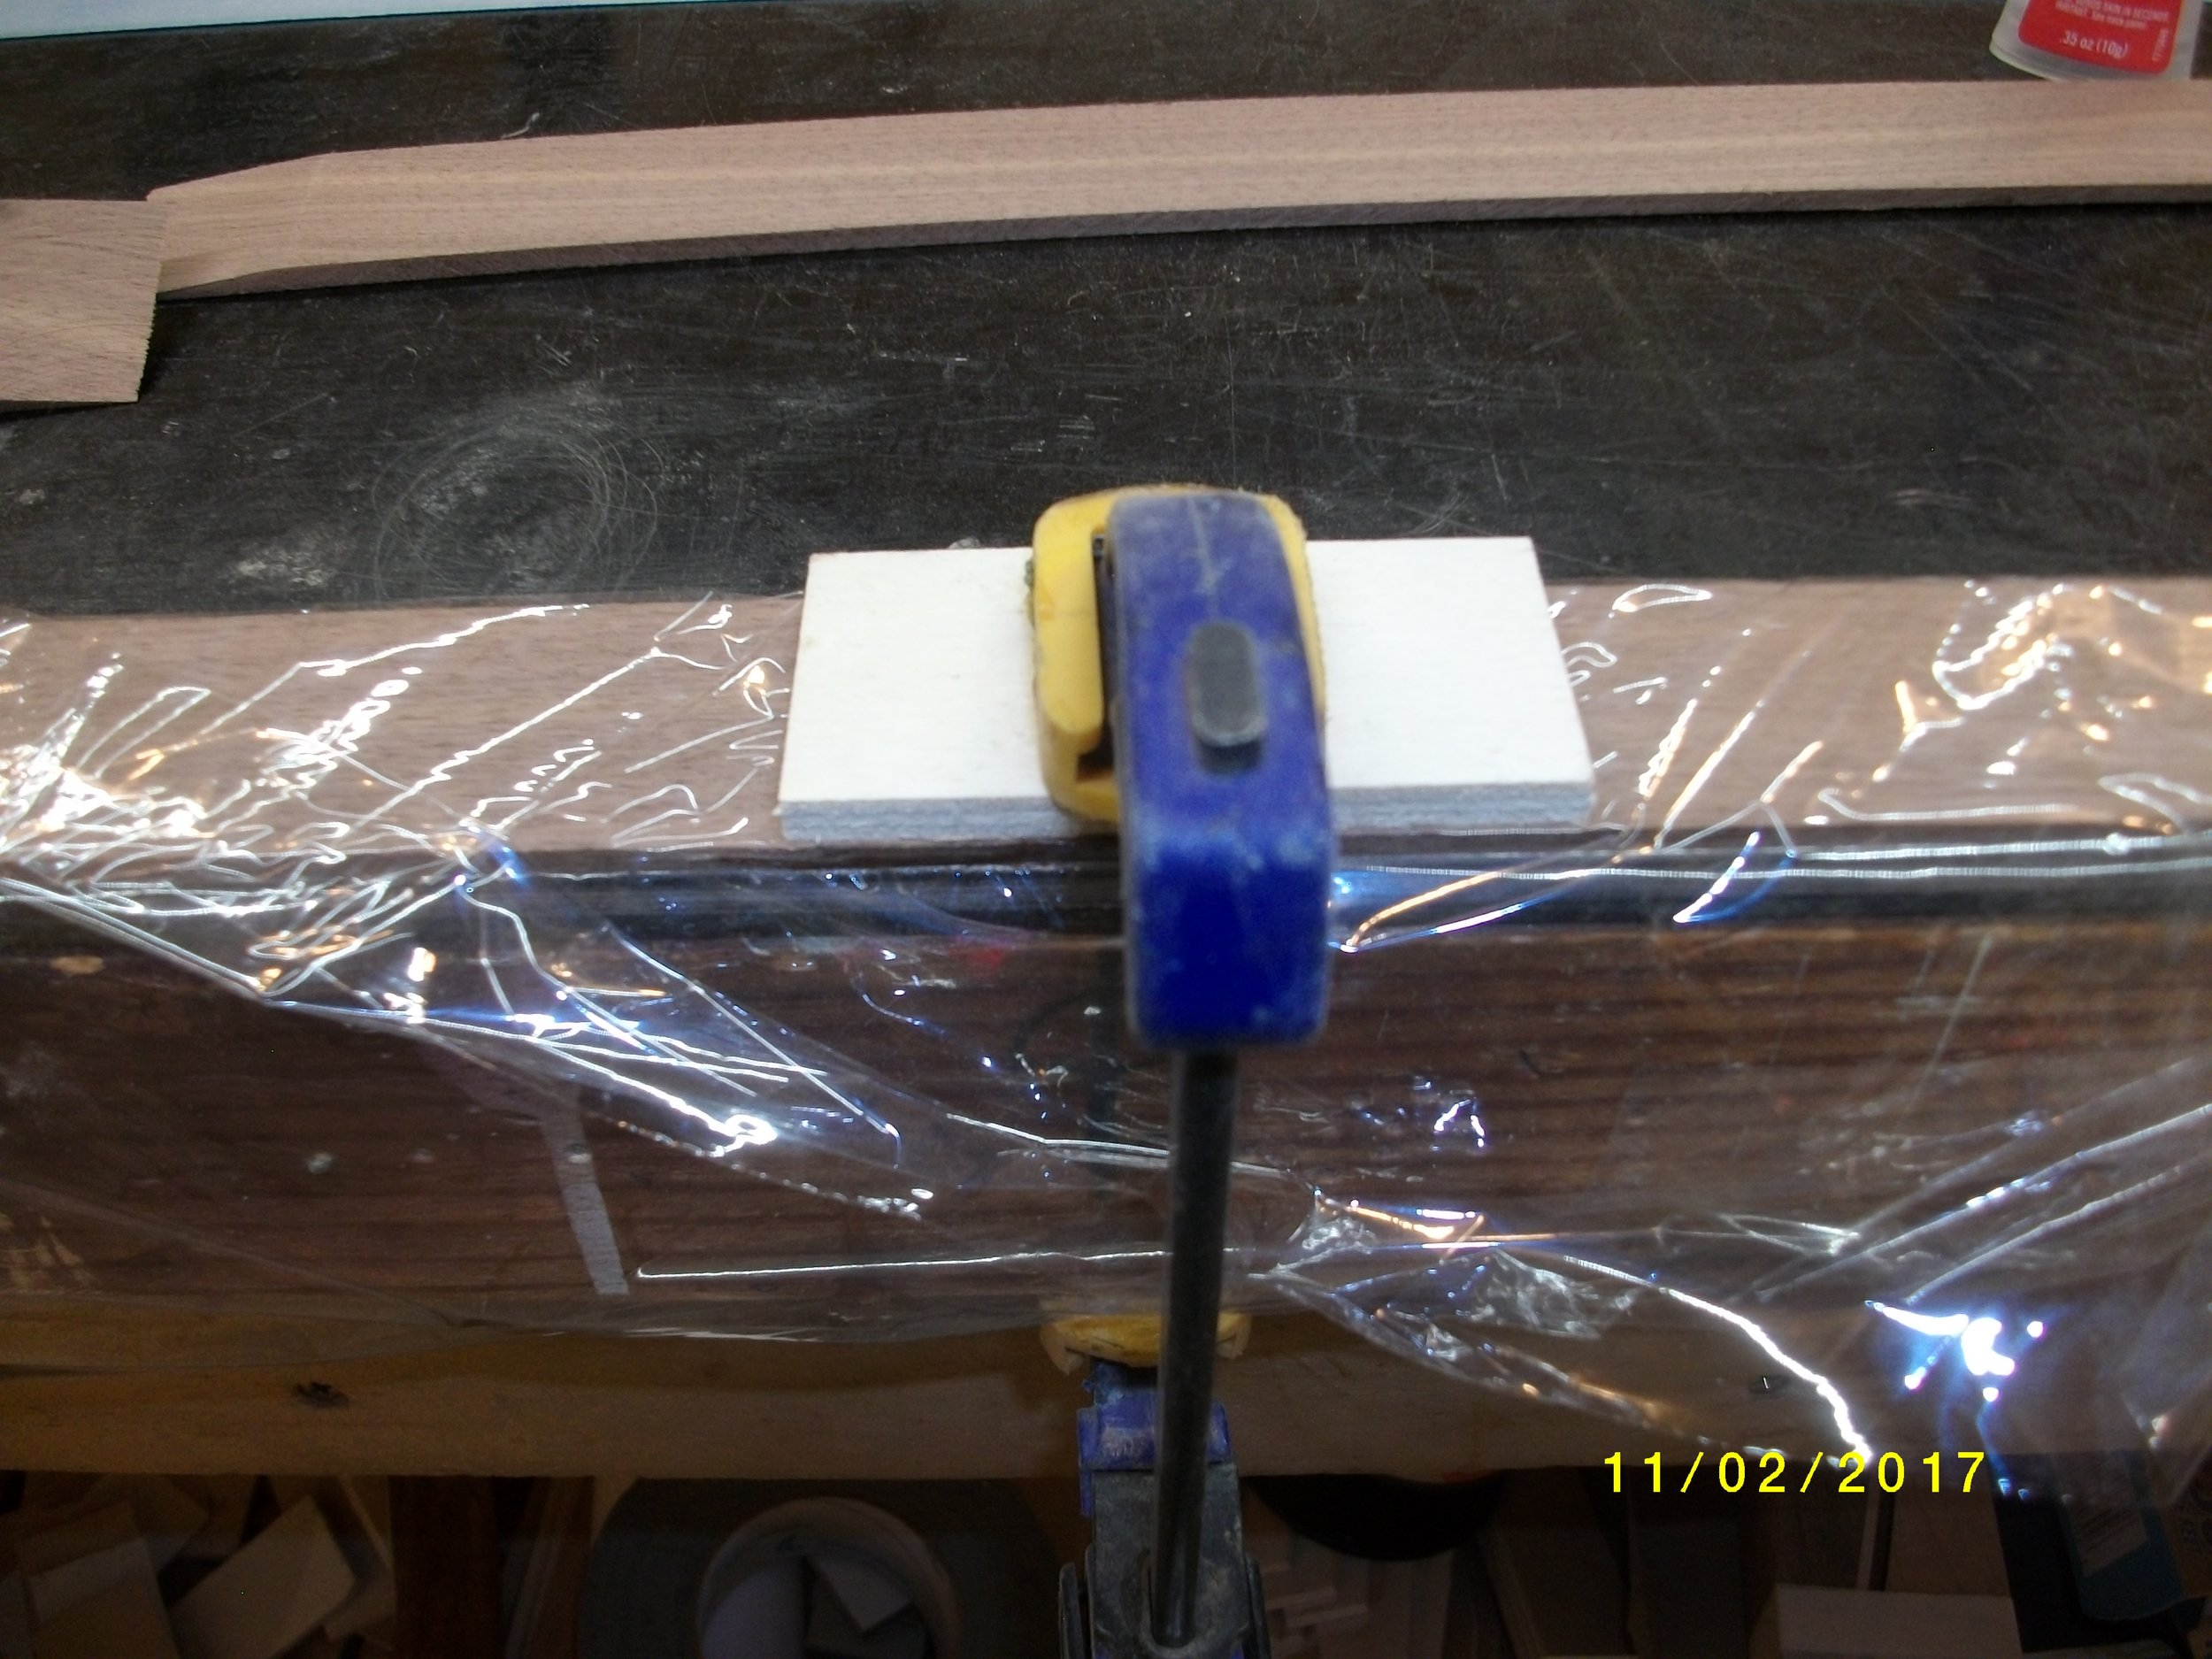 Here it is clamped down. I use Loctite superglue in plastic bottle for these.